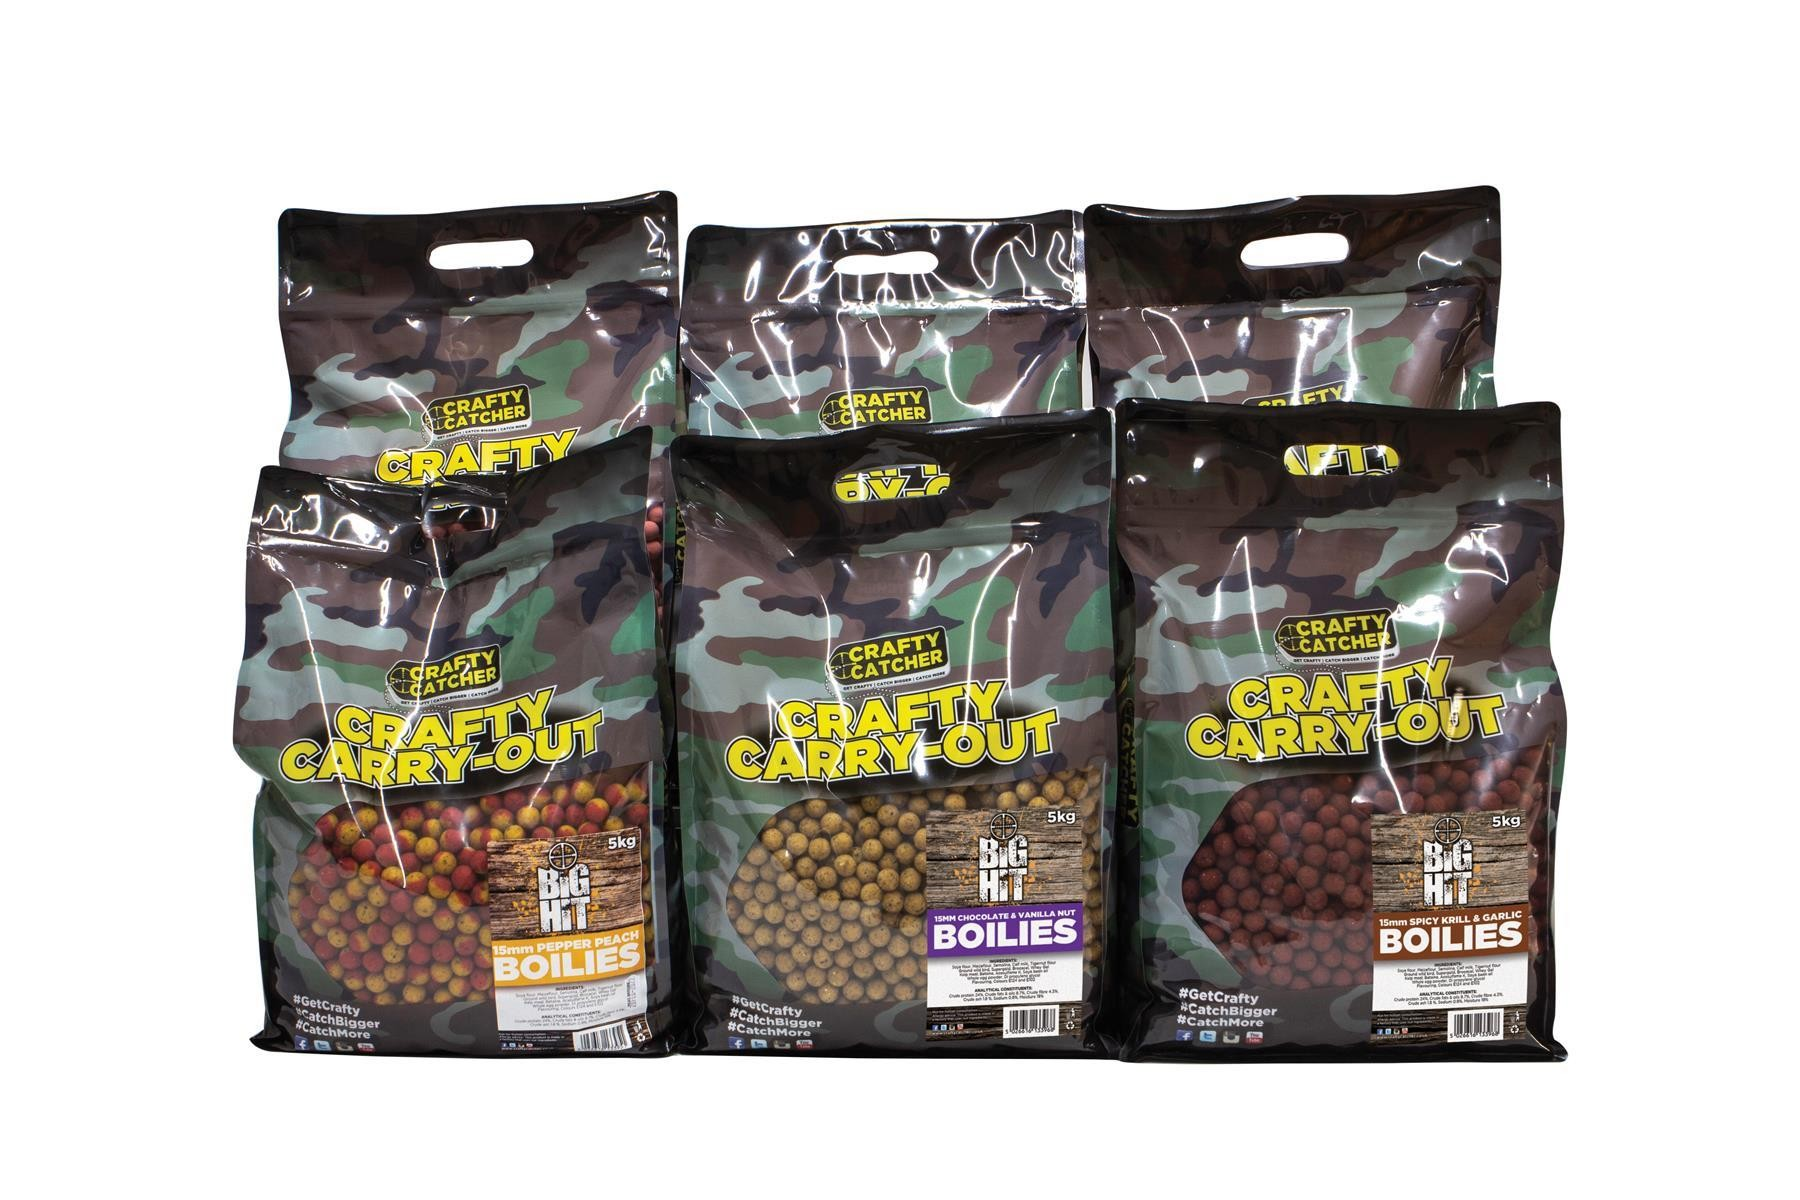 Crafty Catcher Big Hit Chocolate & Vanilla Nut 15mm Boilies 5Kg Carry Out